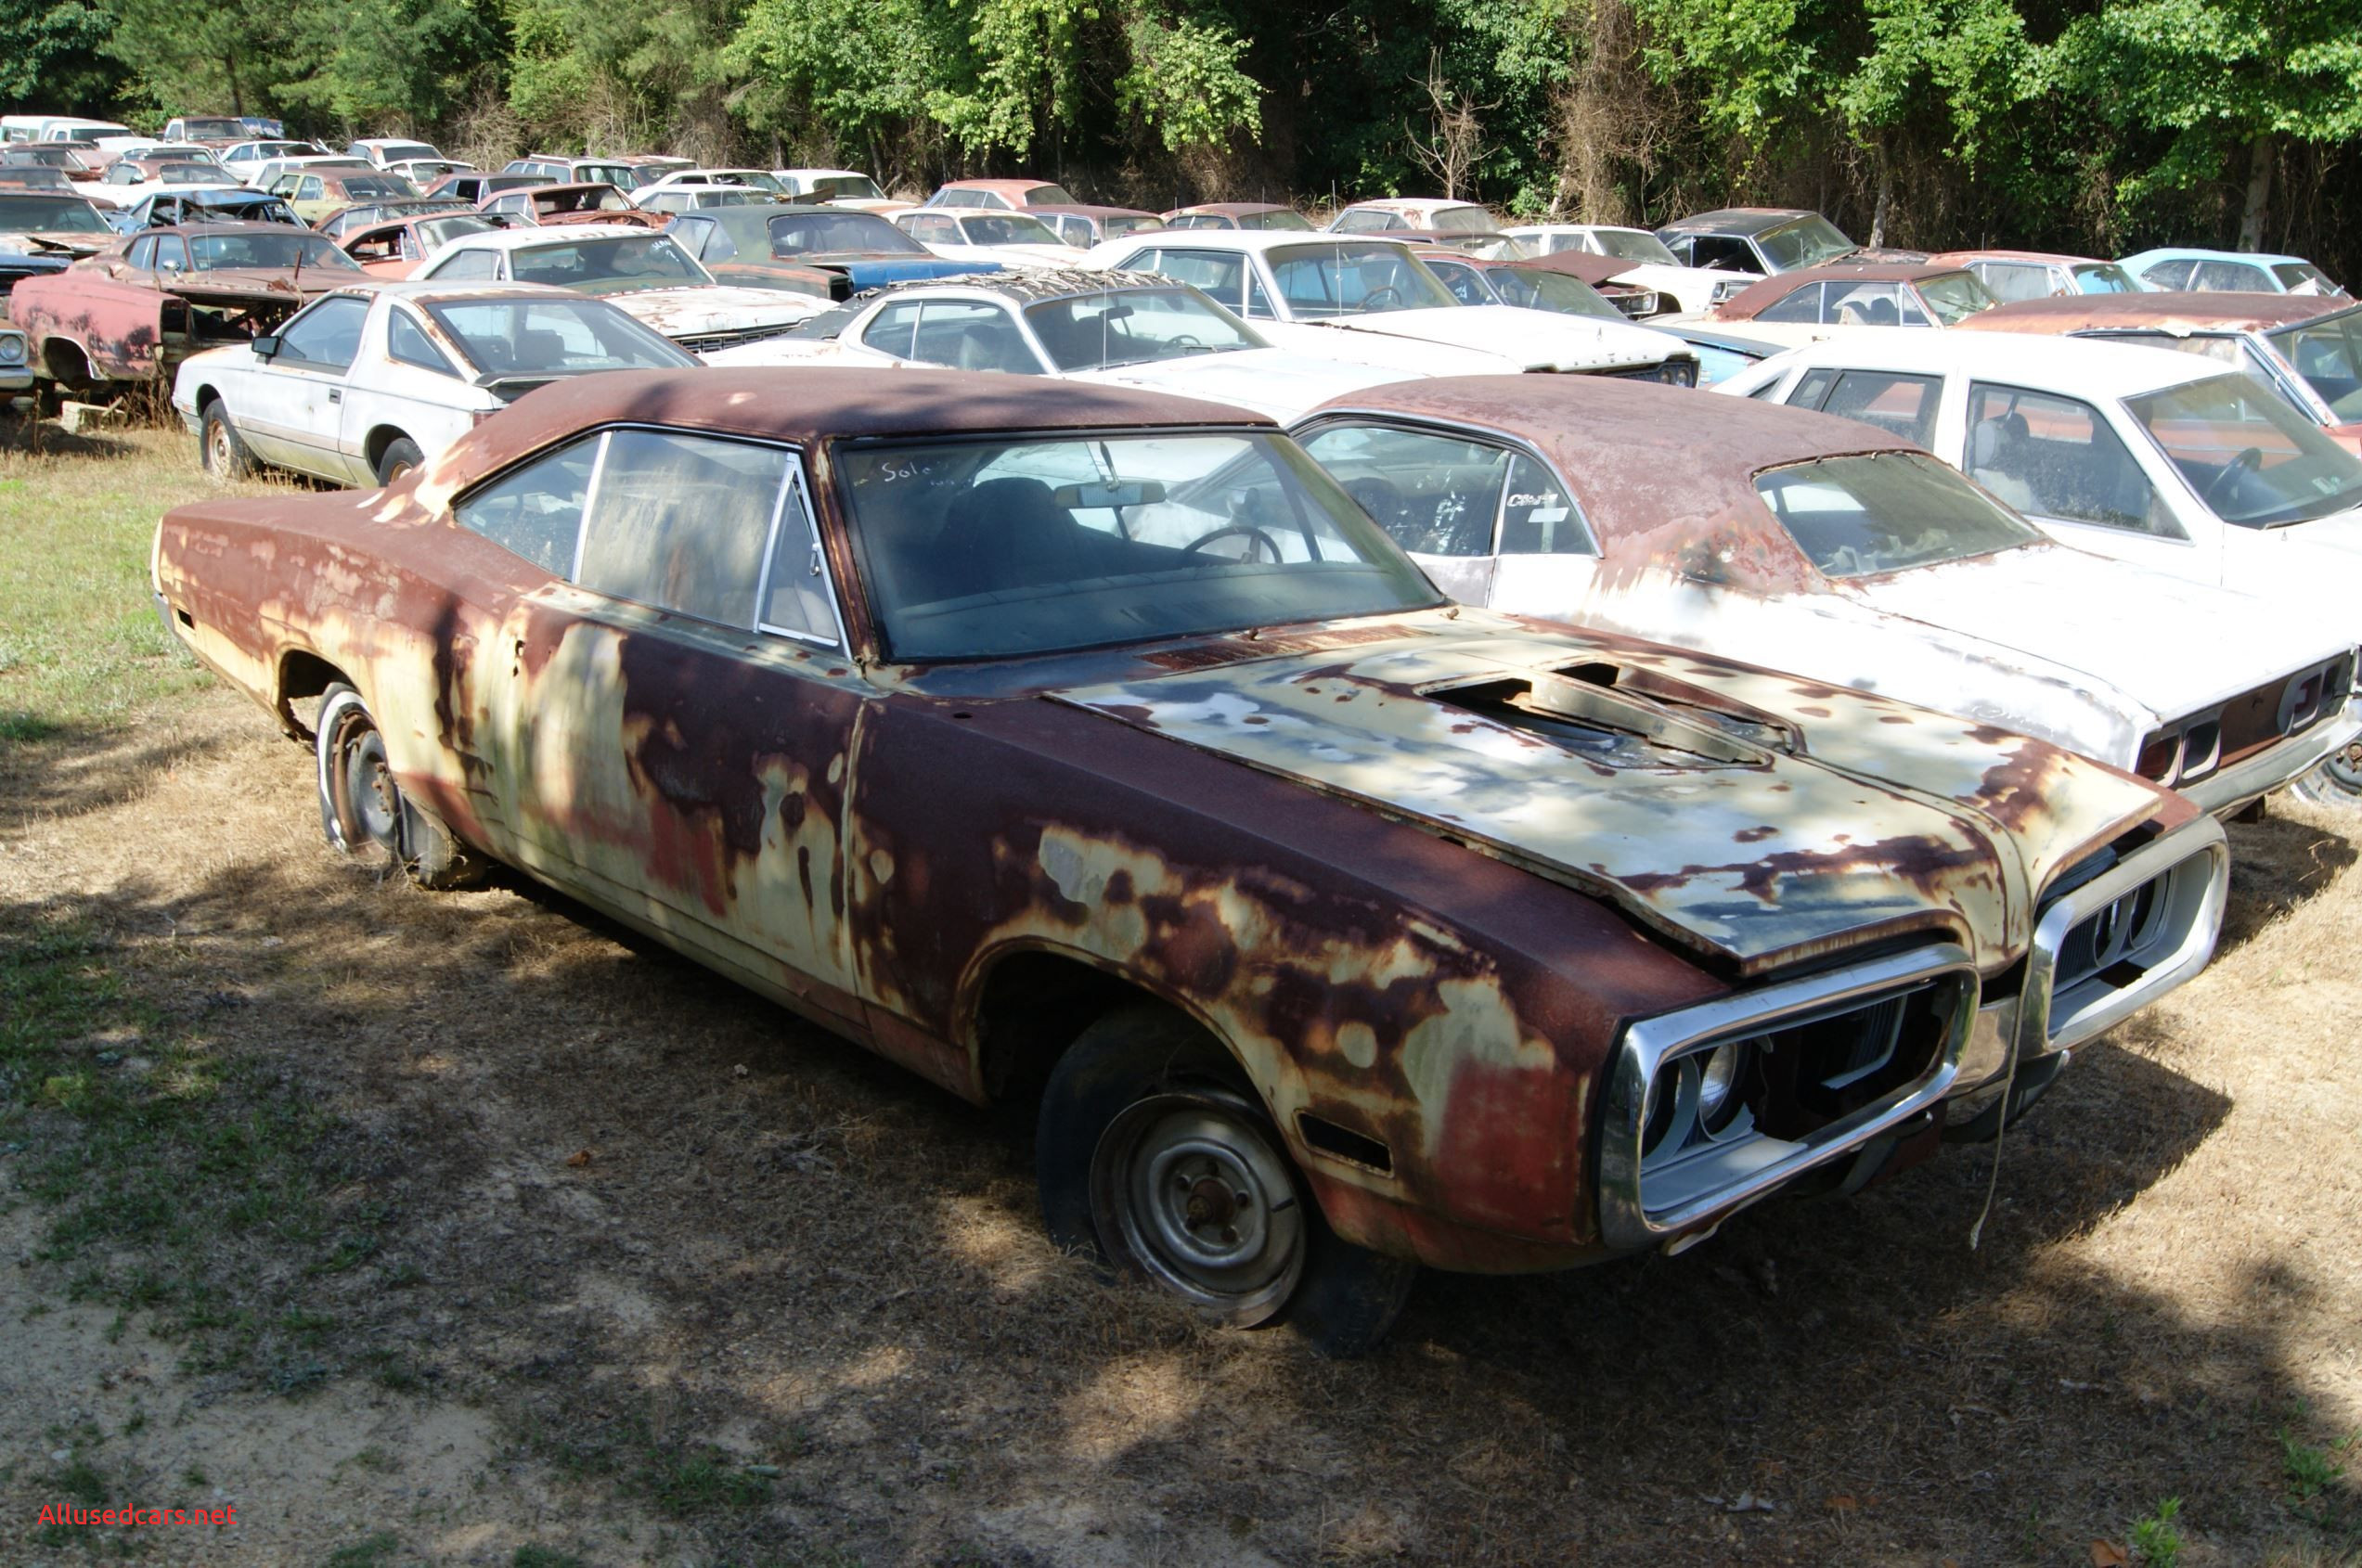 Junkyard Cars for Sale Near Me Best Of Mopar Graveyard Hidden In the Carolina Hills